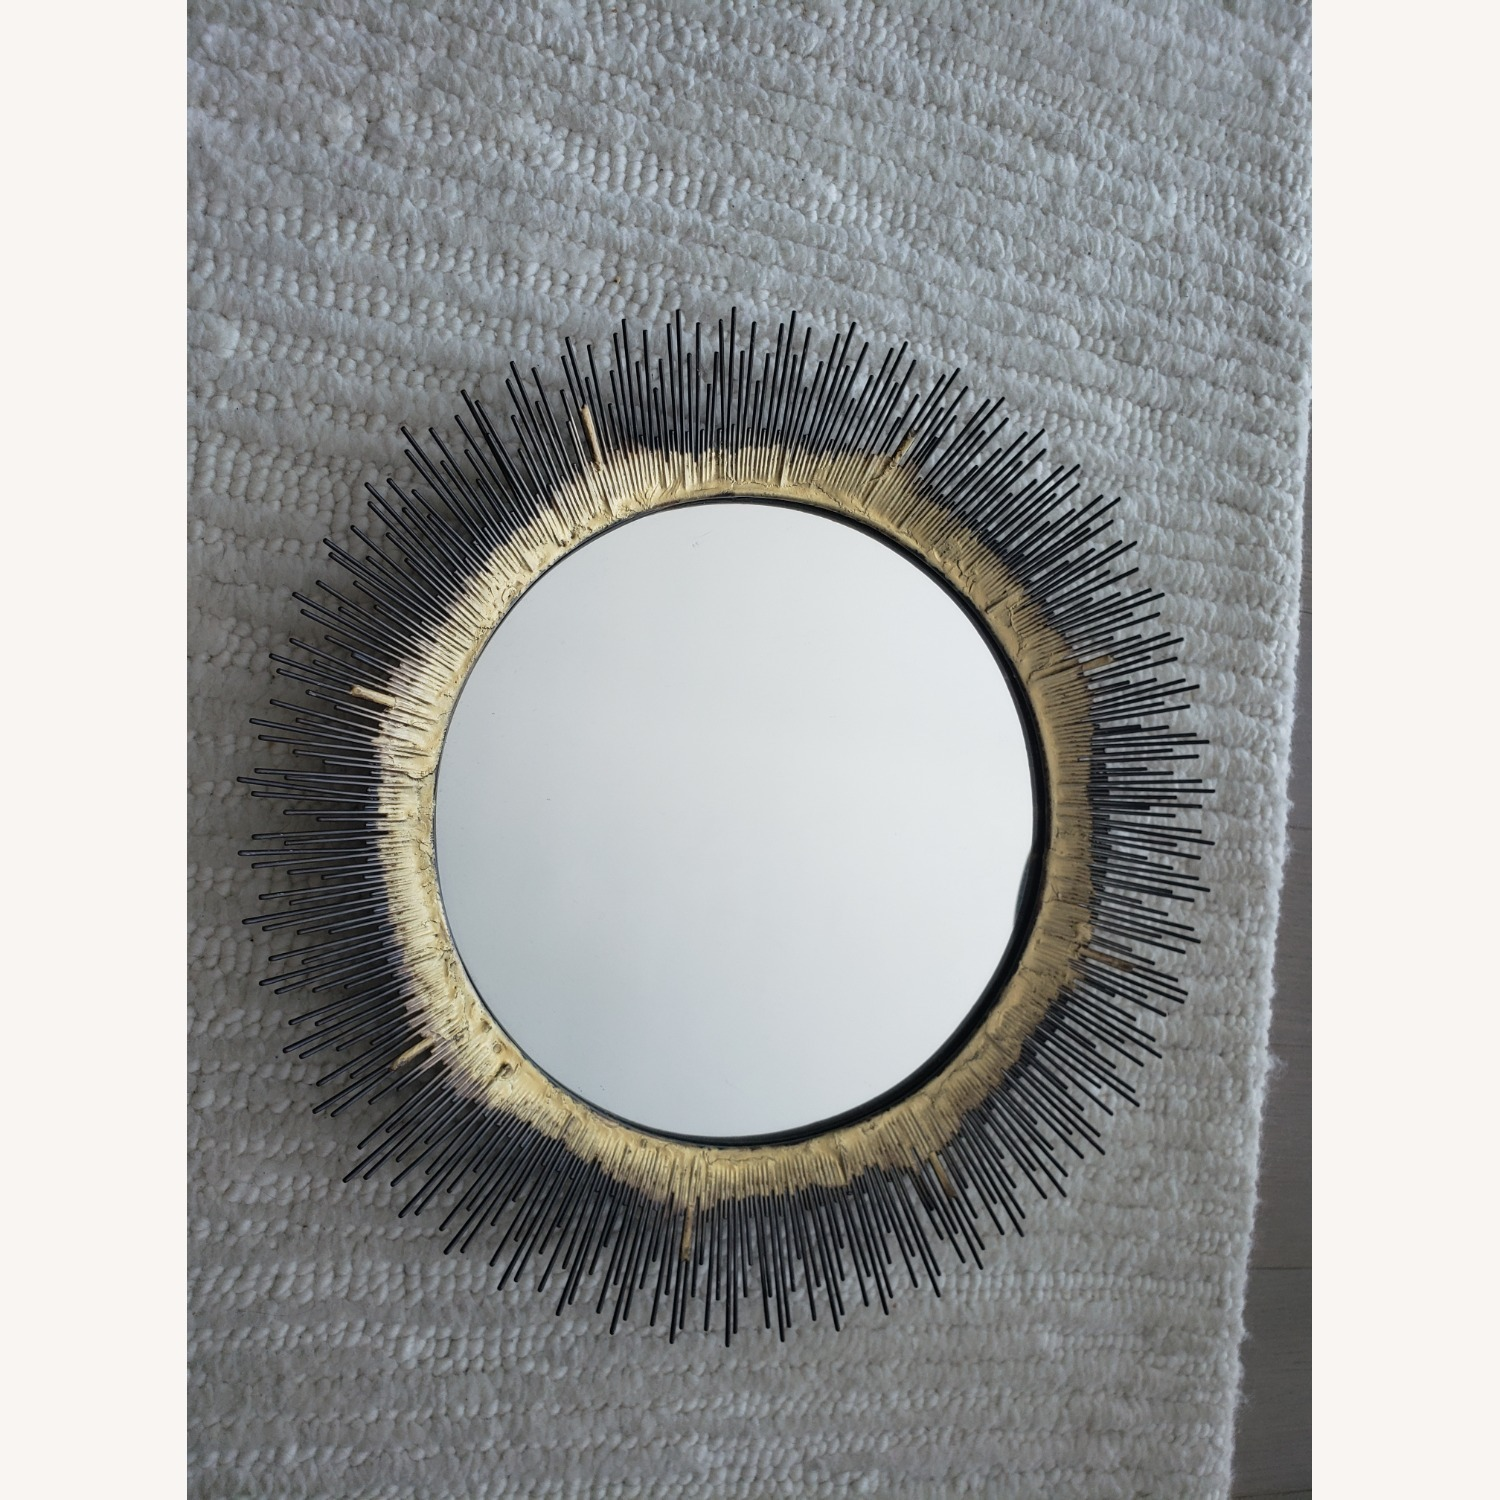 Crate and Barrel Brass Round Wall Mirror - image-1